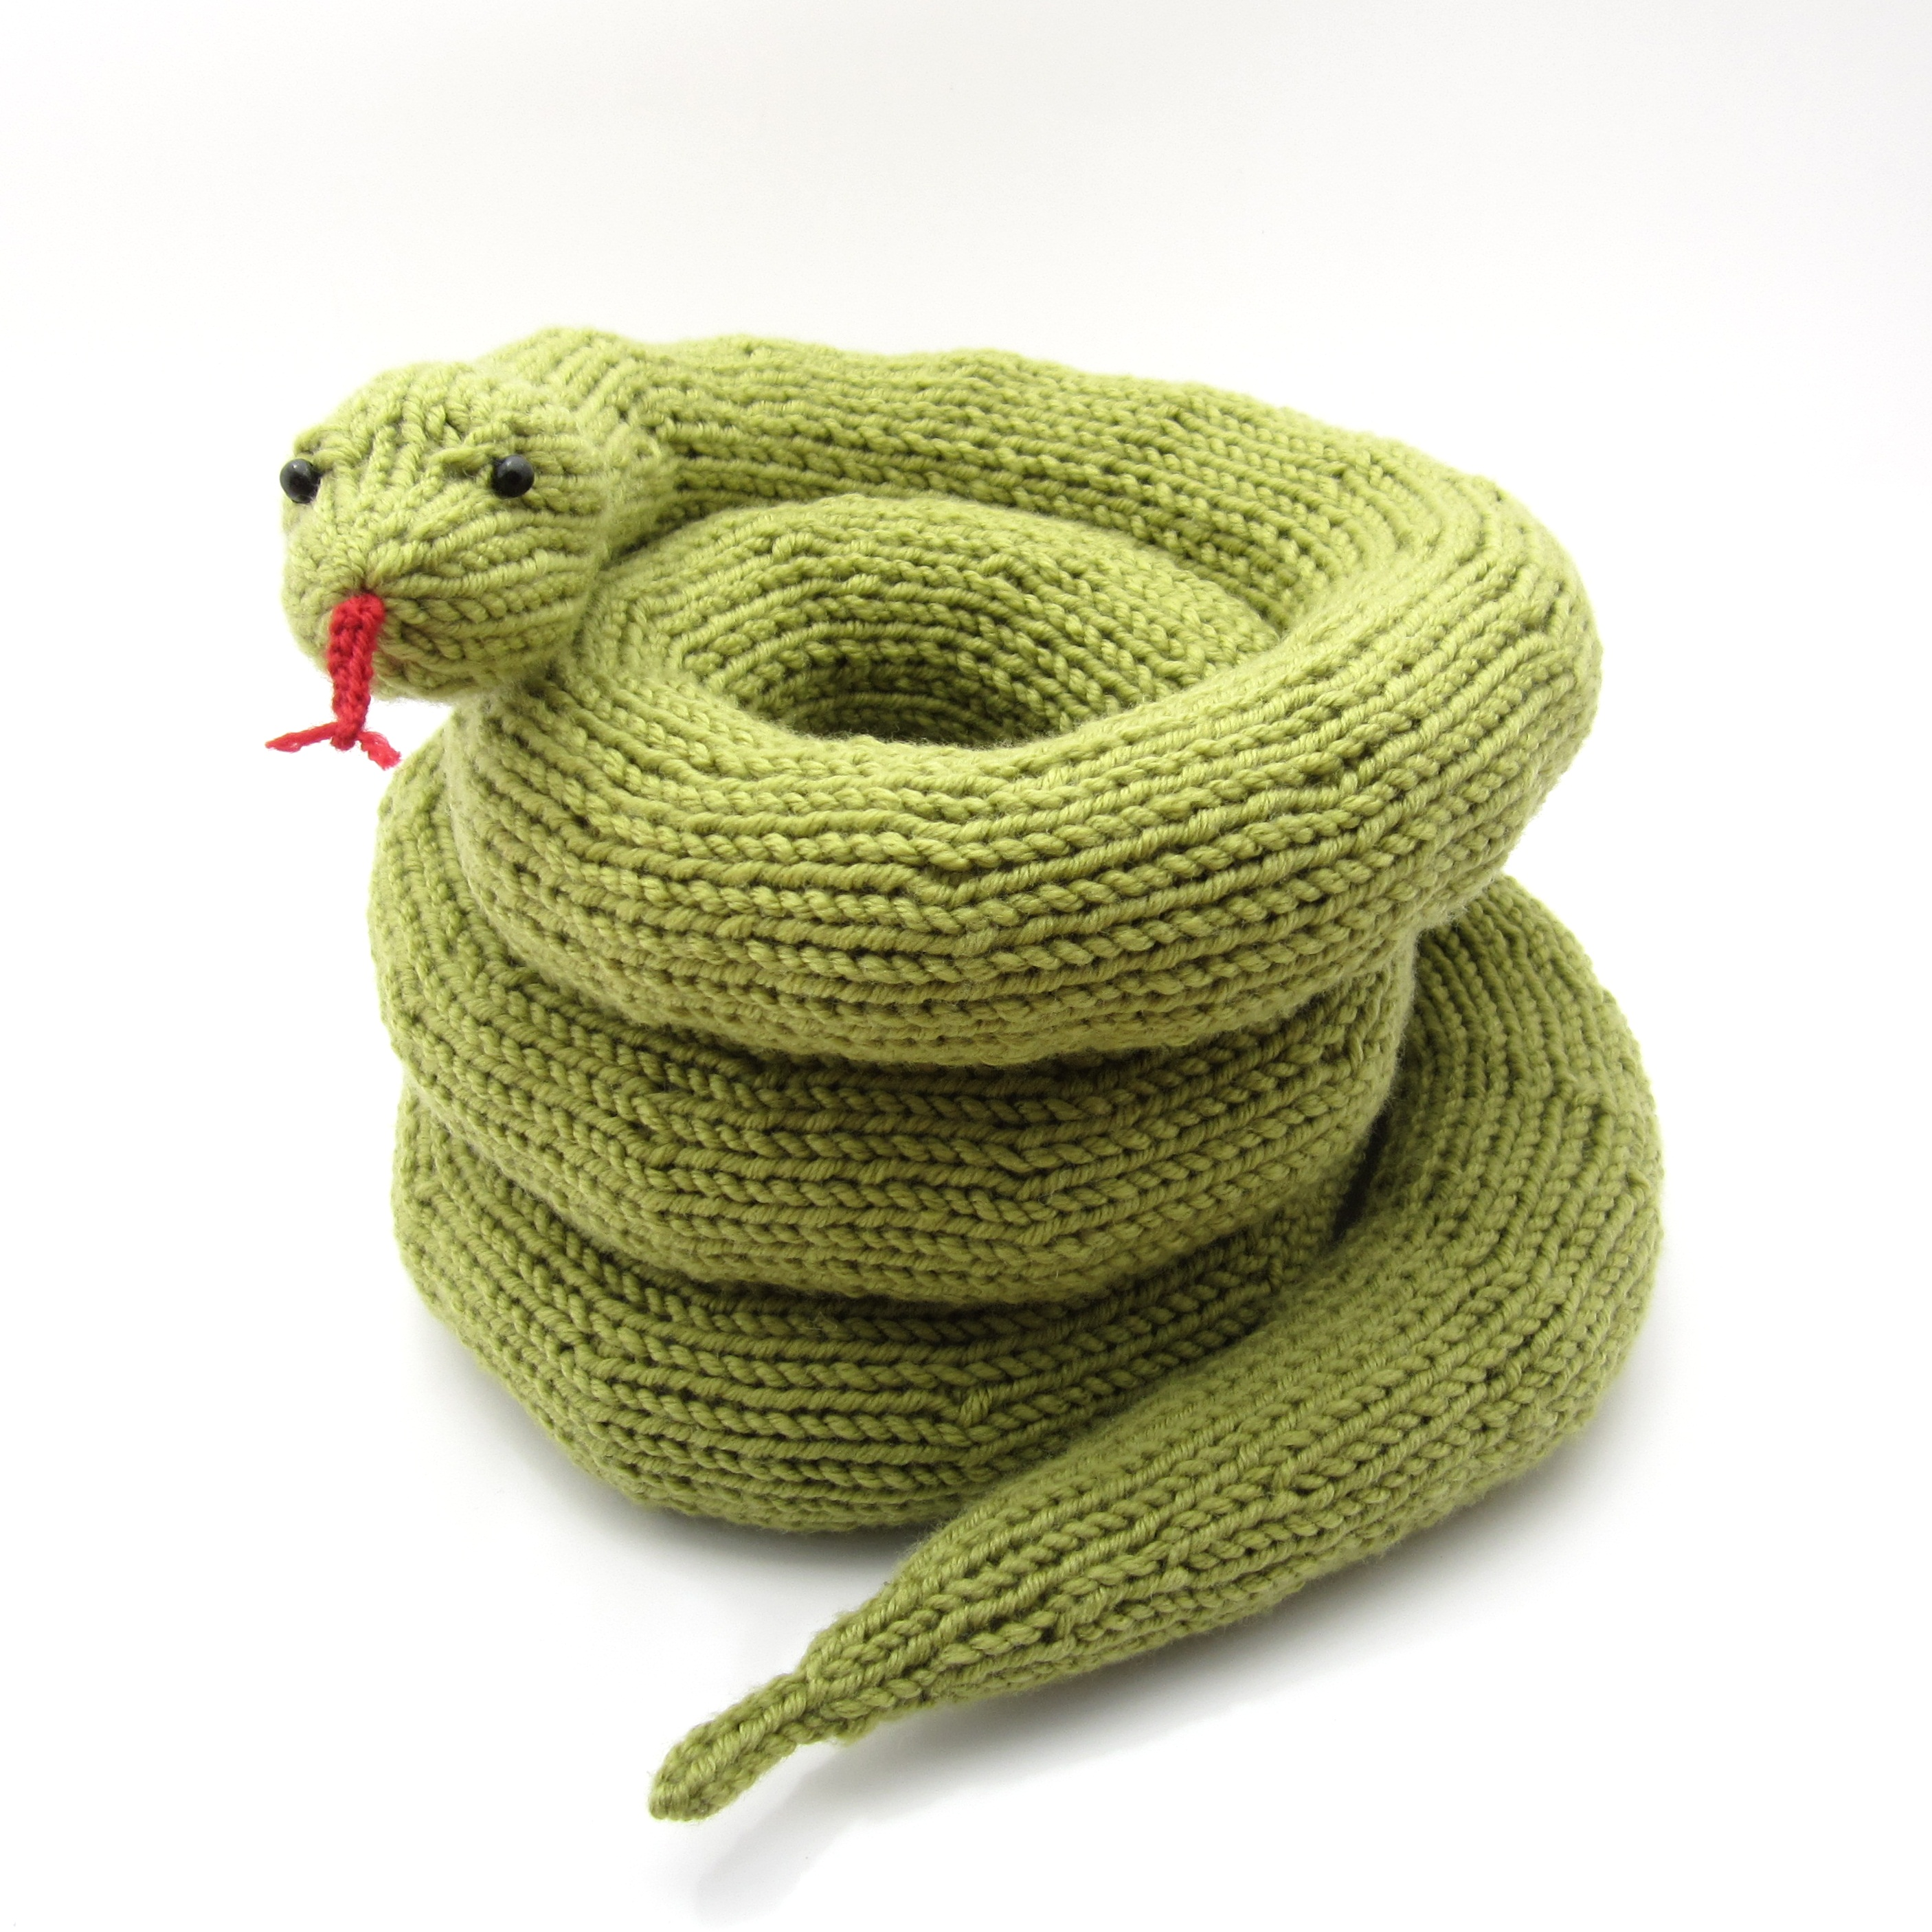 Knitting Pattern Help : knitted snake